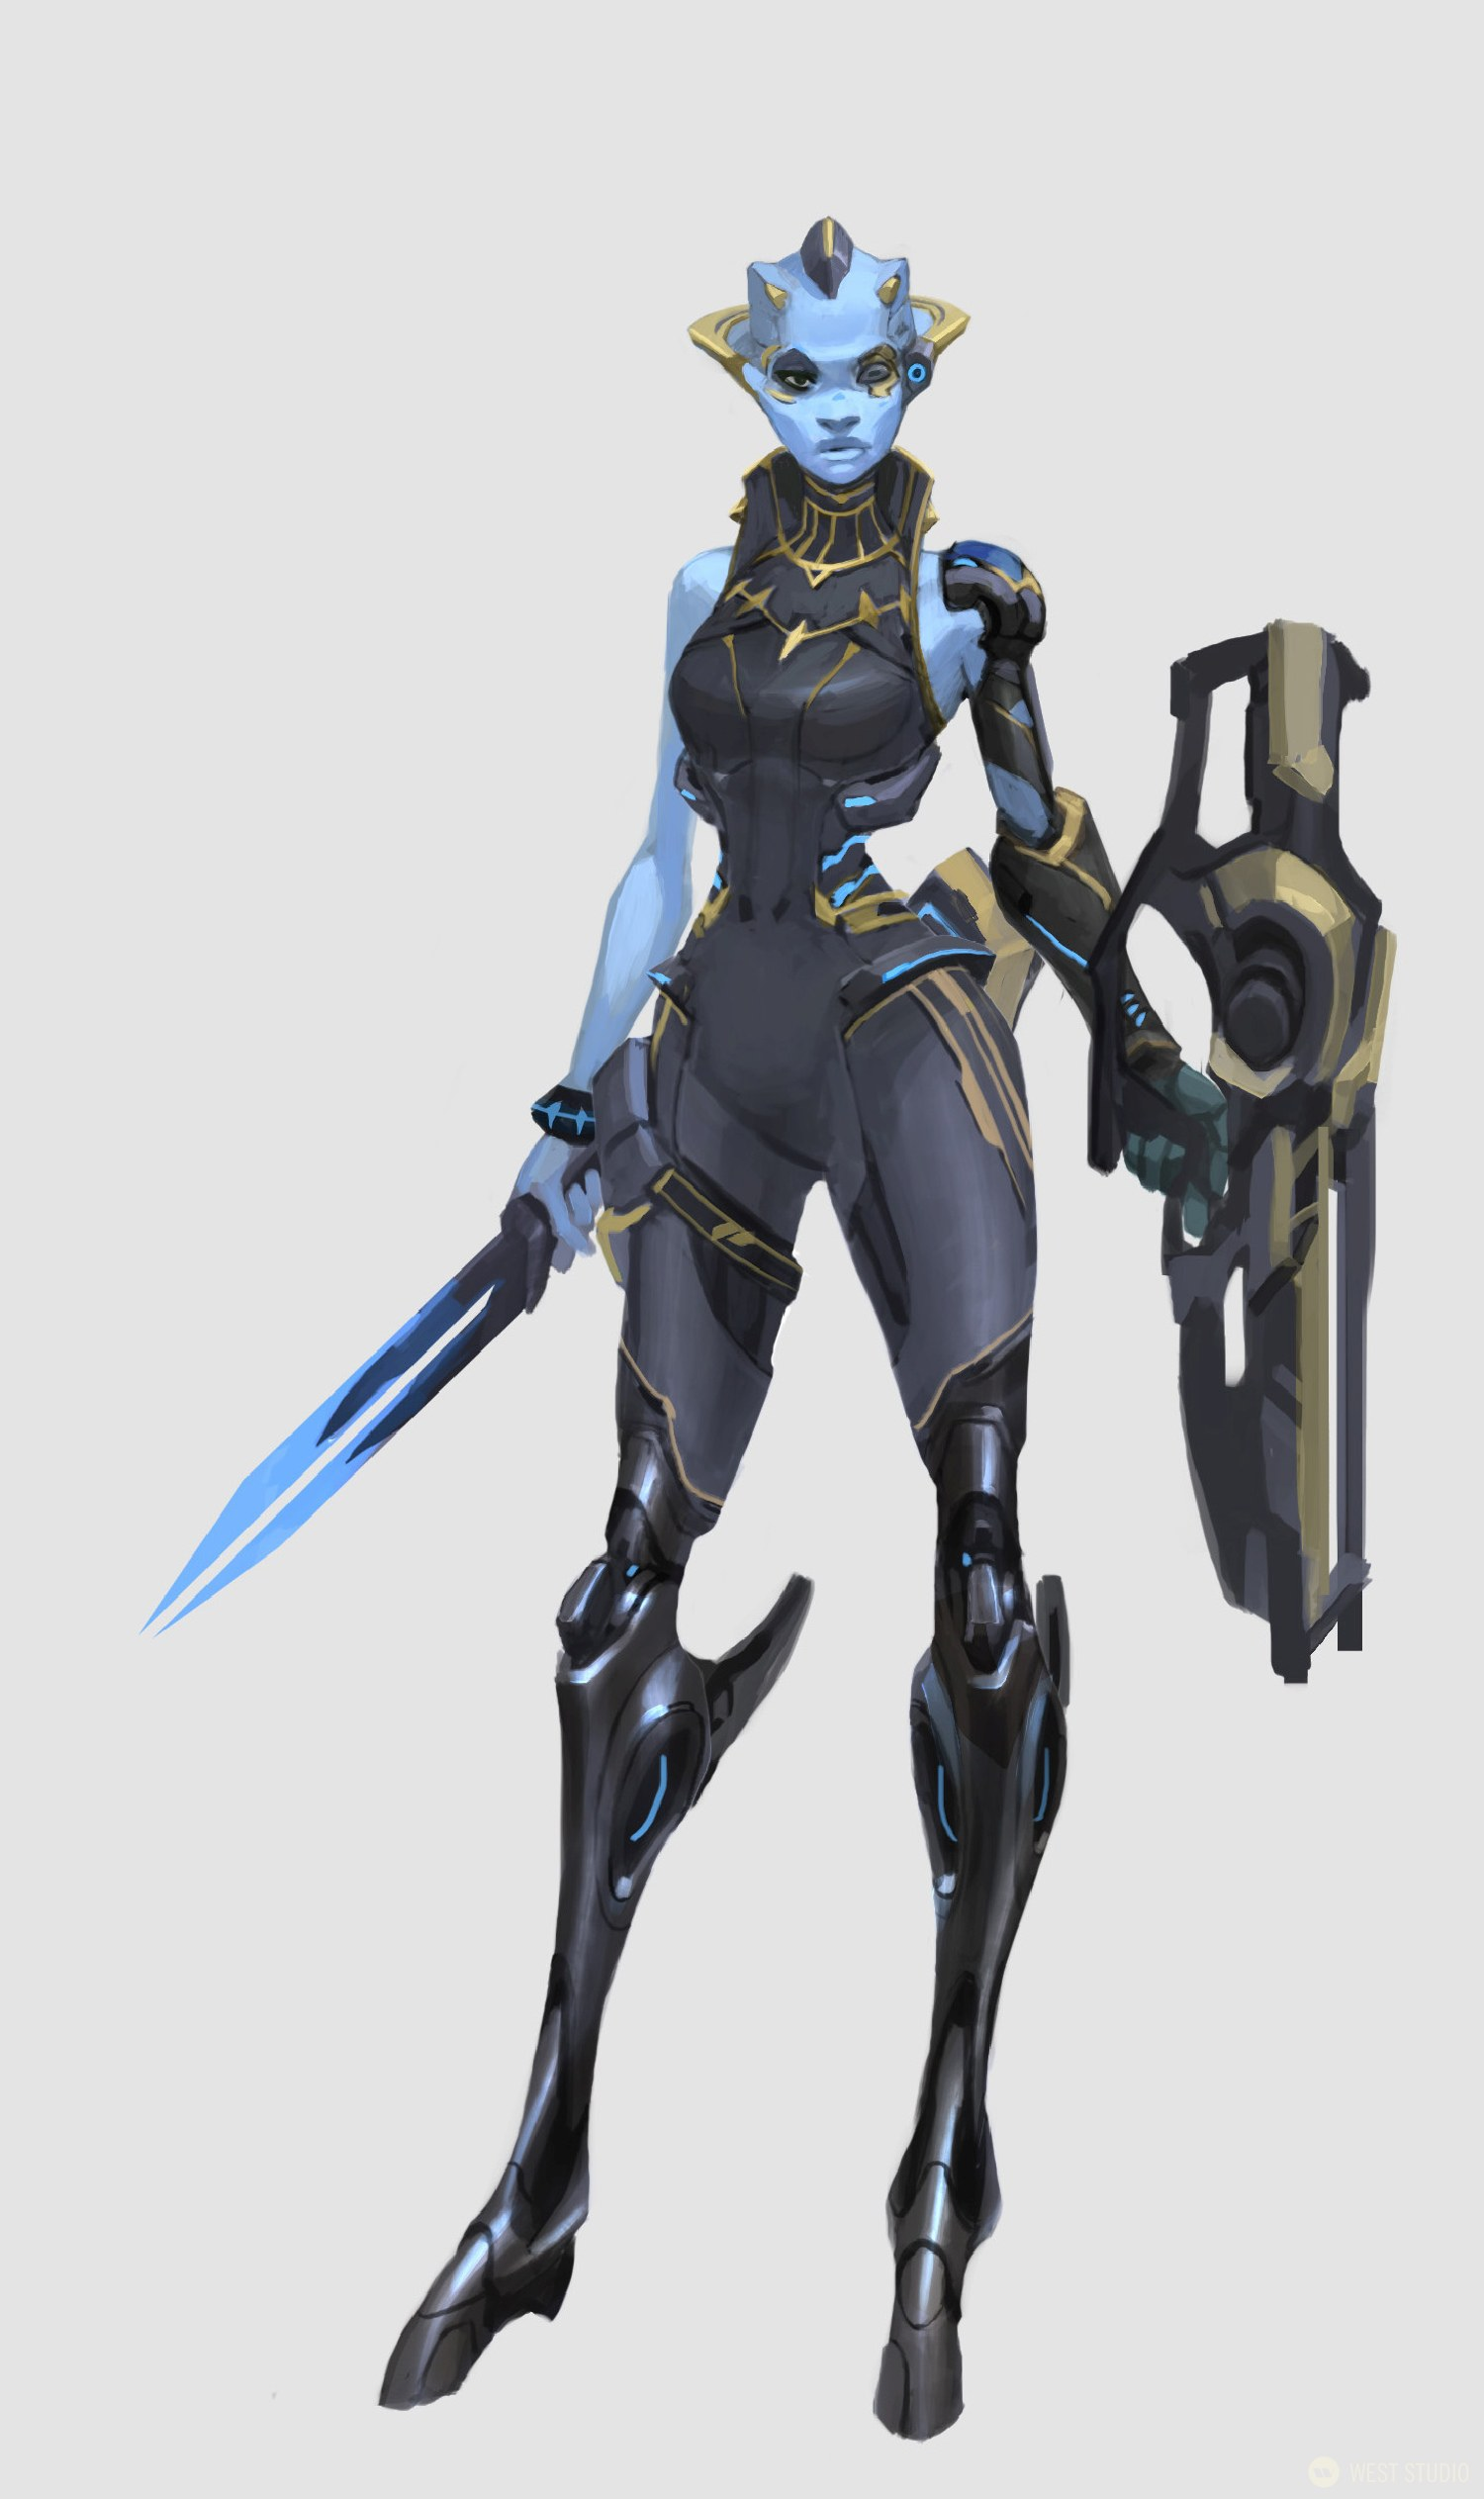 A full-color concept art image featuring a finalized design of a sci-fi alien character with a sword and weapon from the video game, Drifters.